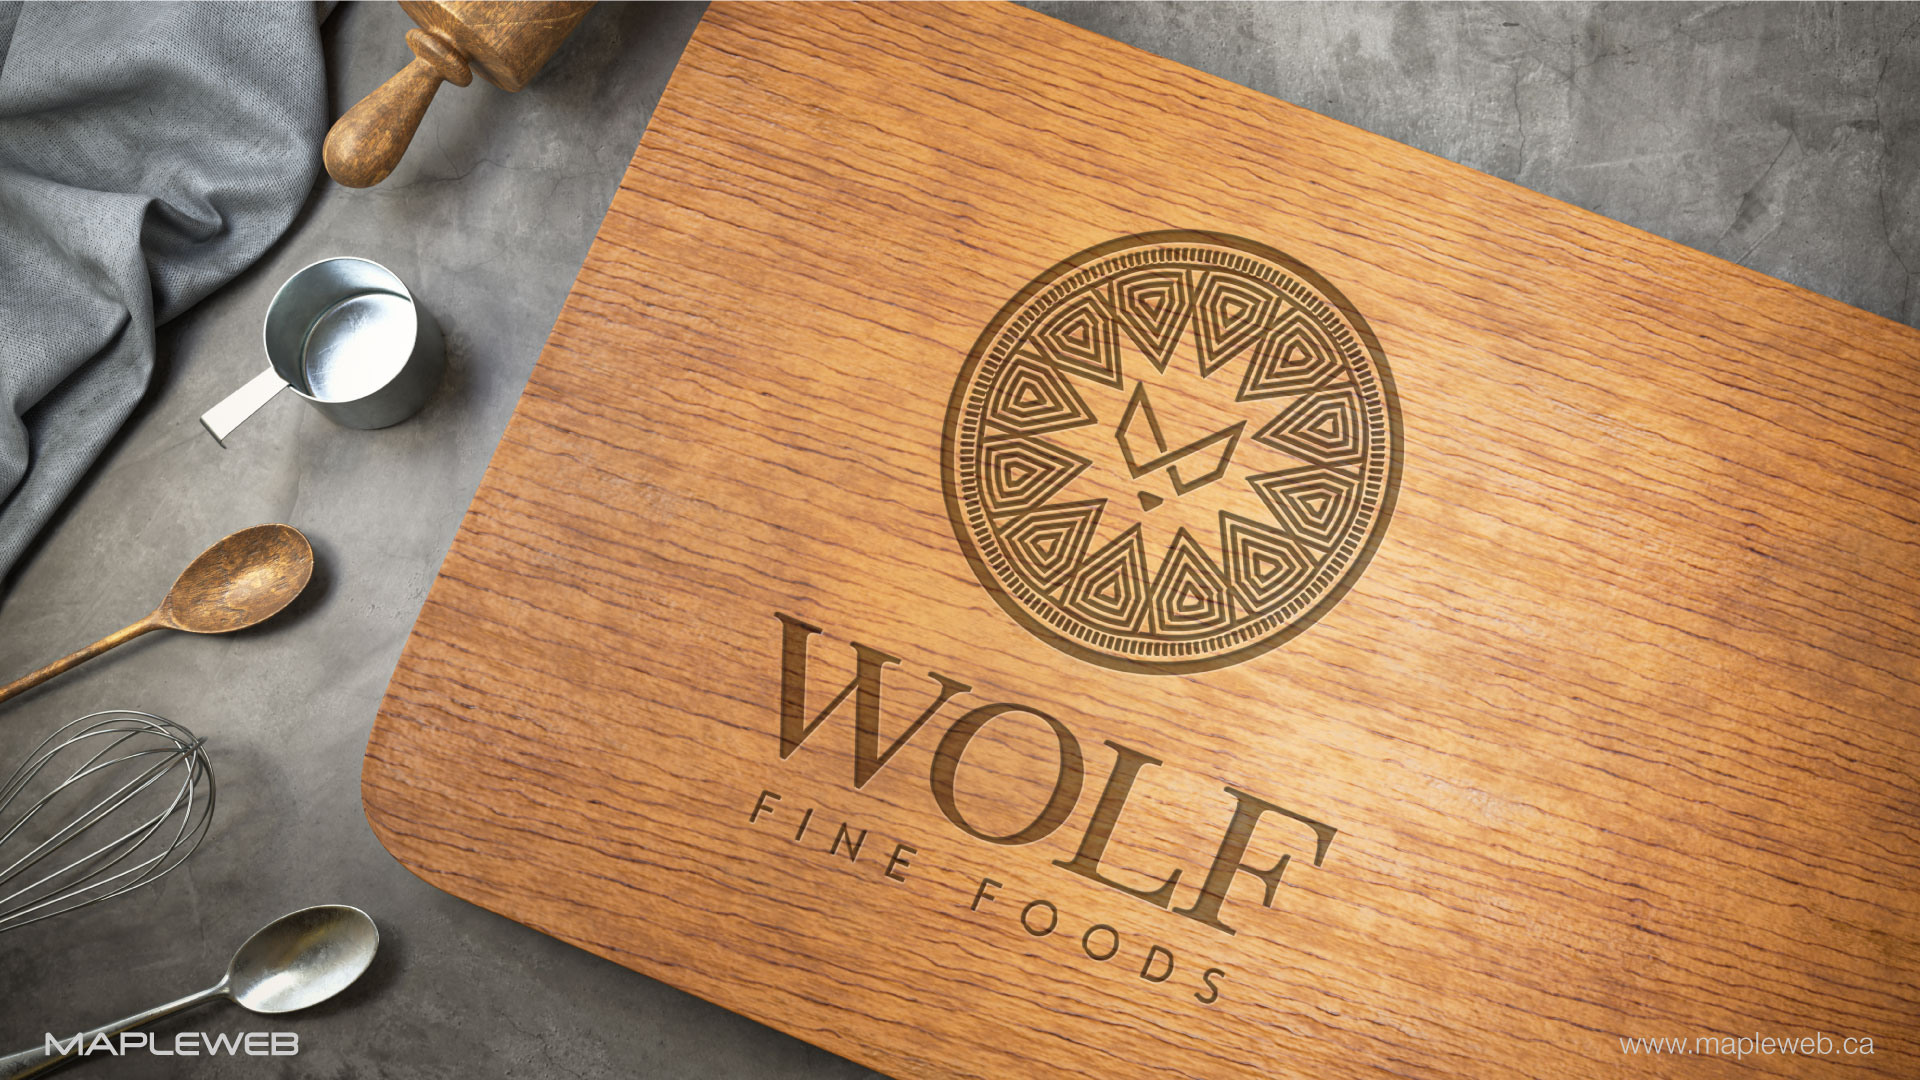 wolf-fine-foods-brand-logo-design-by-mapleweb-vancouver-canada-wooden-cutting-board-mock